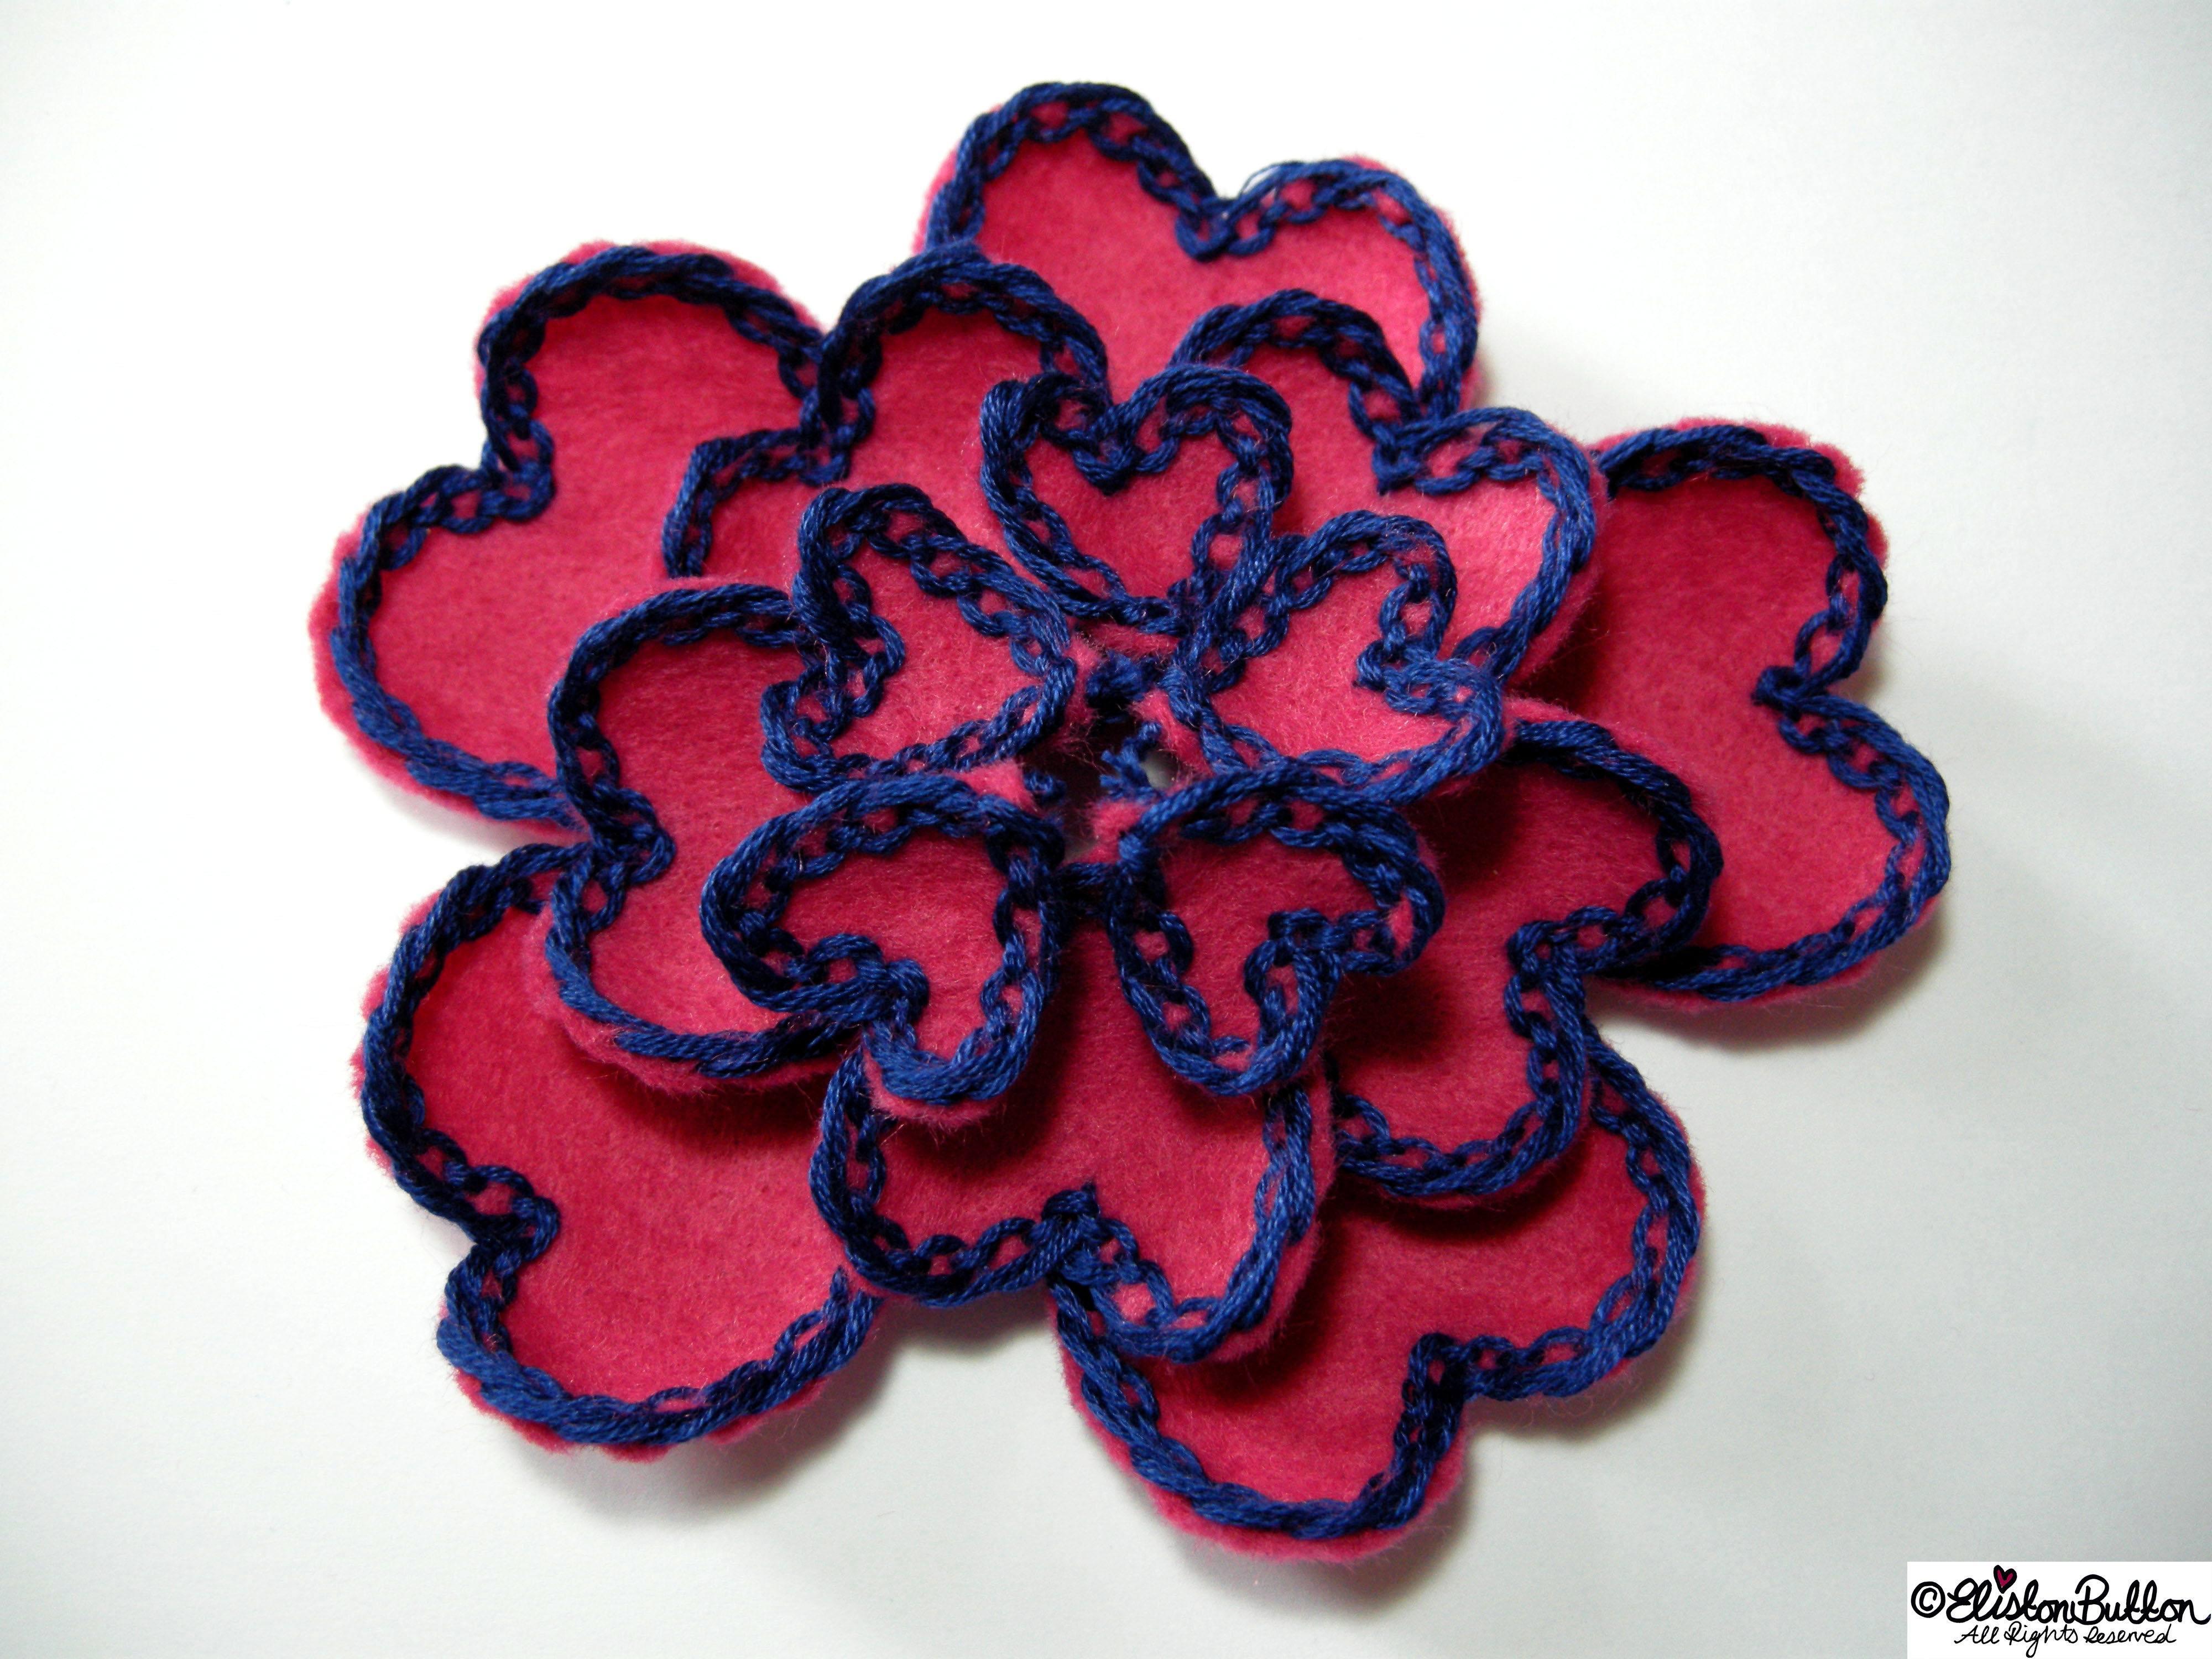 Pink Felt Heart Petals with Navy Blue Lace-Like Embroidery - Flower Shape - 27 Before 27 - Pink Hearts at www.elistonbutton.com - Eliston Button - That Crafty Kid – Art, Design, Craft & Adventure.